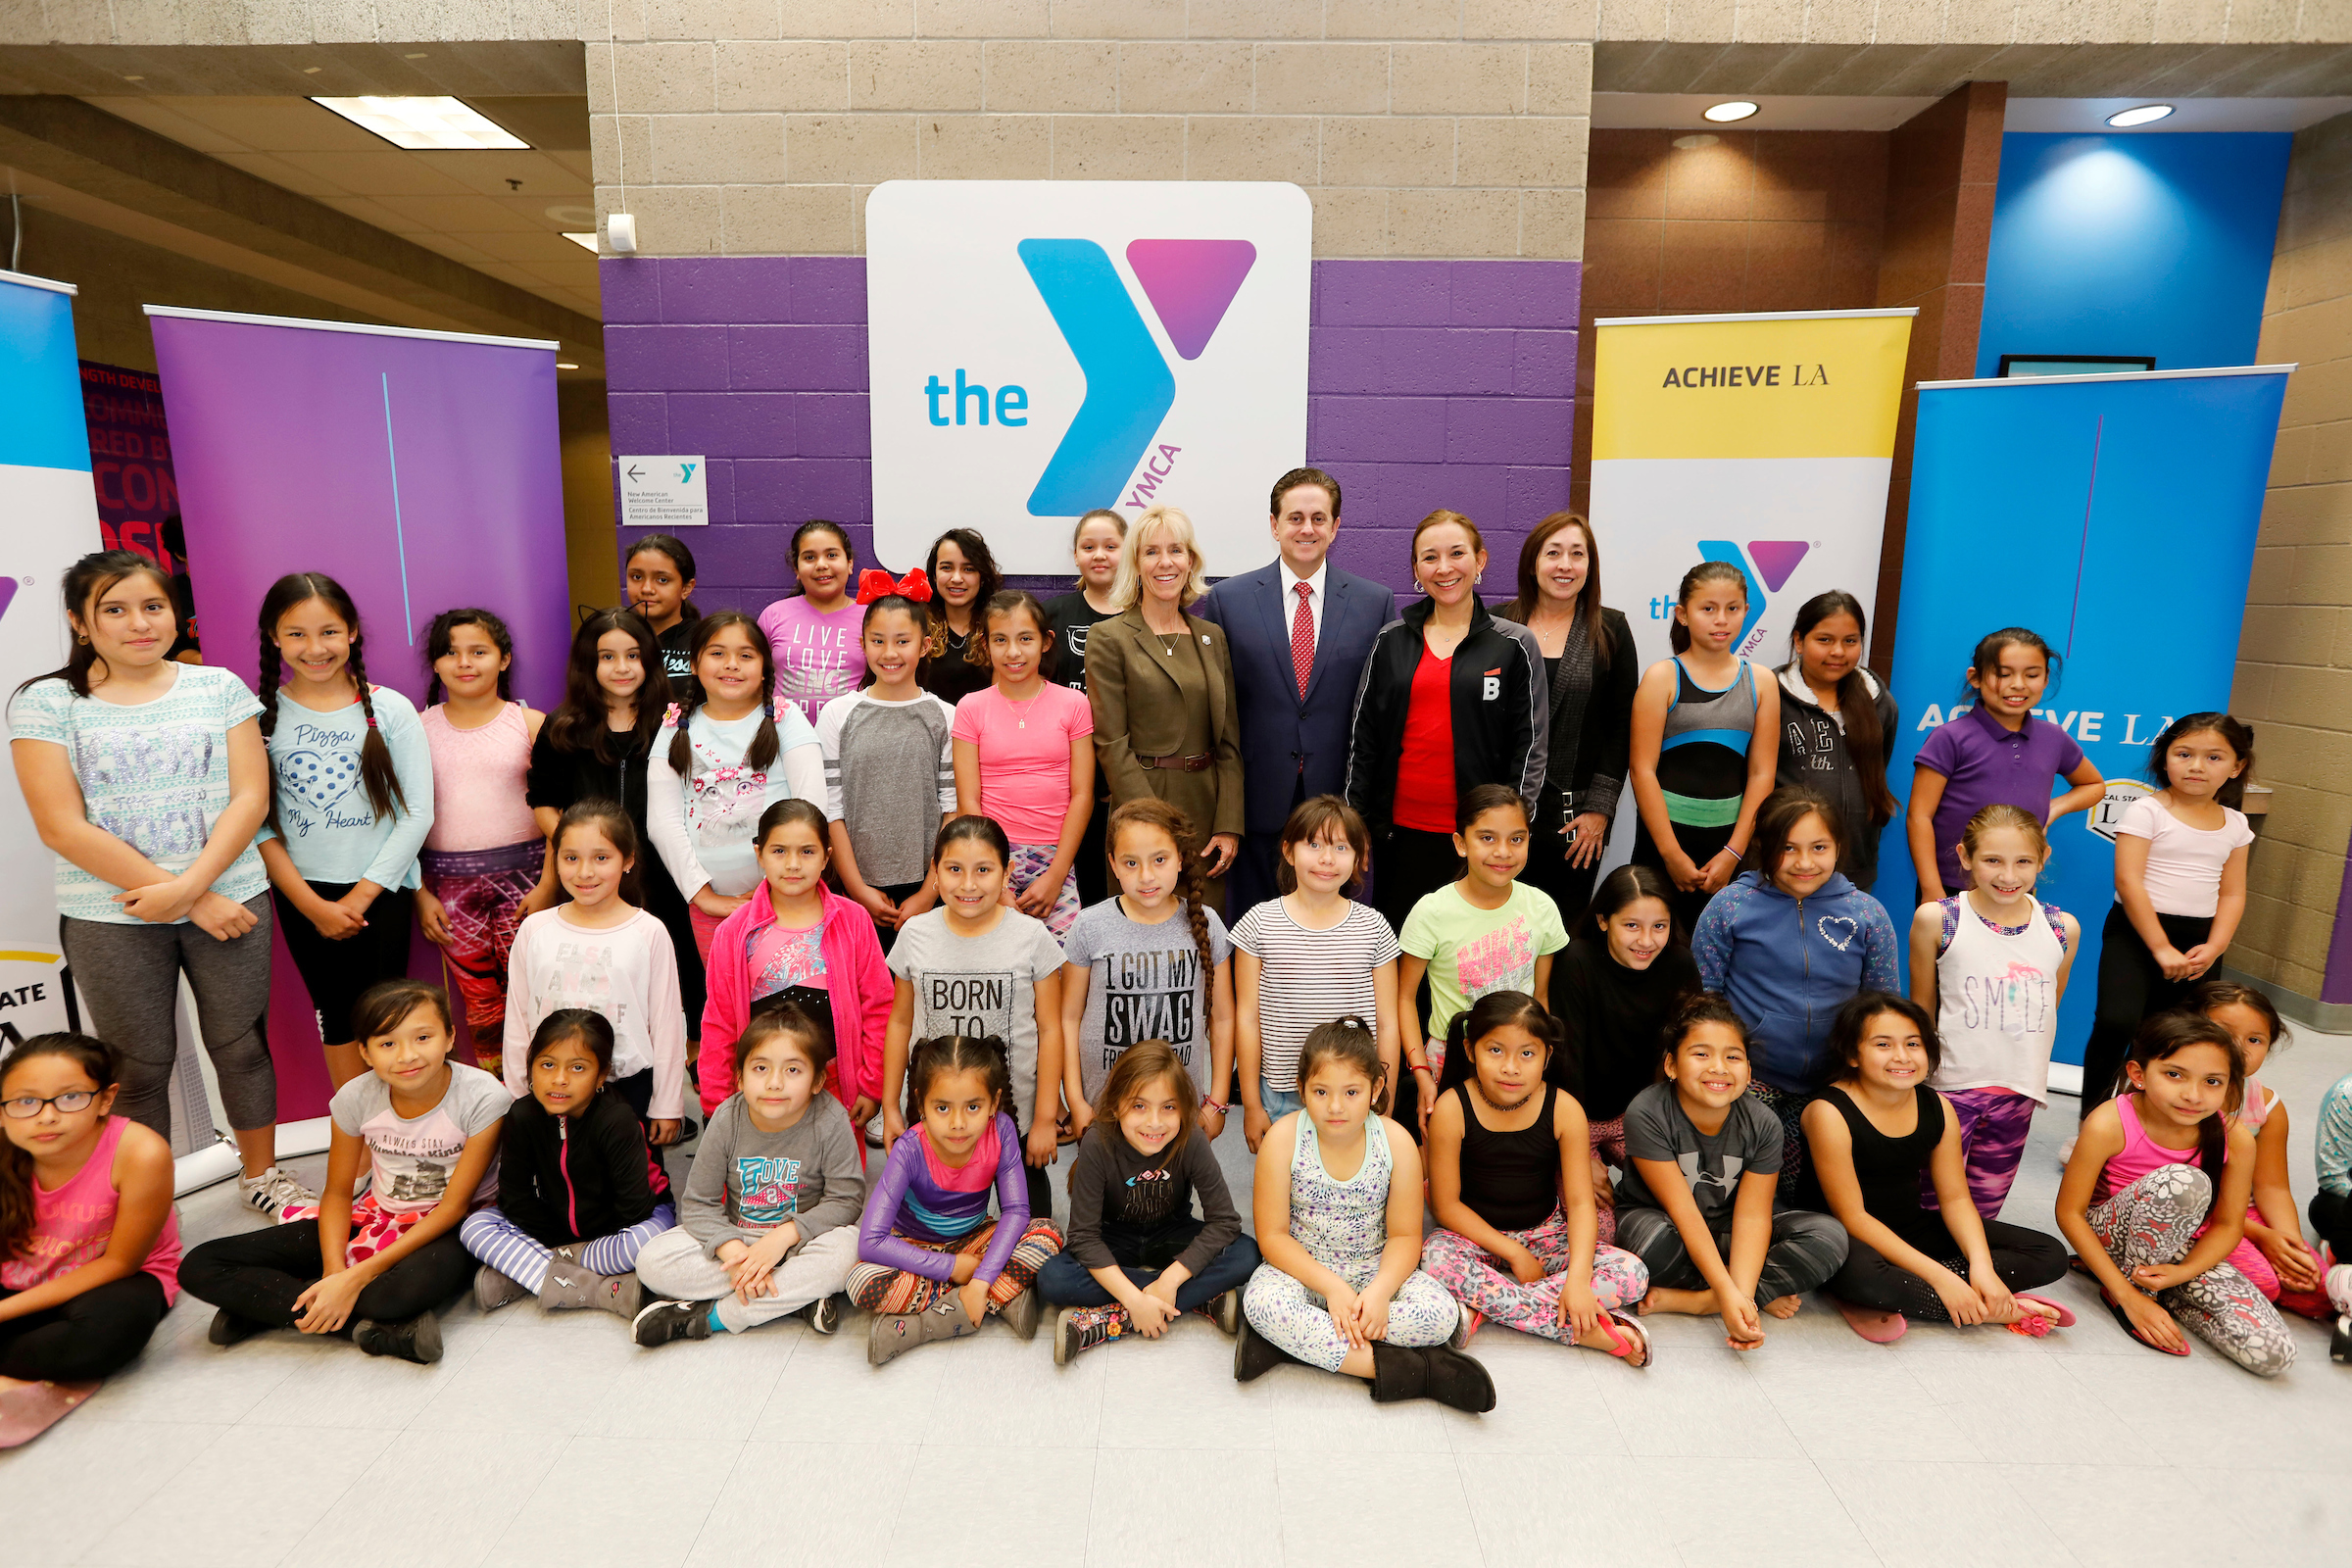 Cal State LA Vice President for Advancement Janet S. Dial, Cal State LA Executive Vice President Jose A. Gomez, Ballet Hispánico's Gabriela Estrada and Southeast-Rio Vista YMCA Executive Director Patricia Renteria with children at the dance workshop